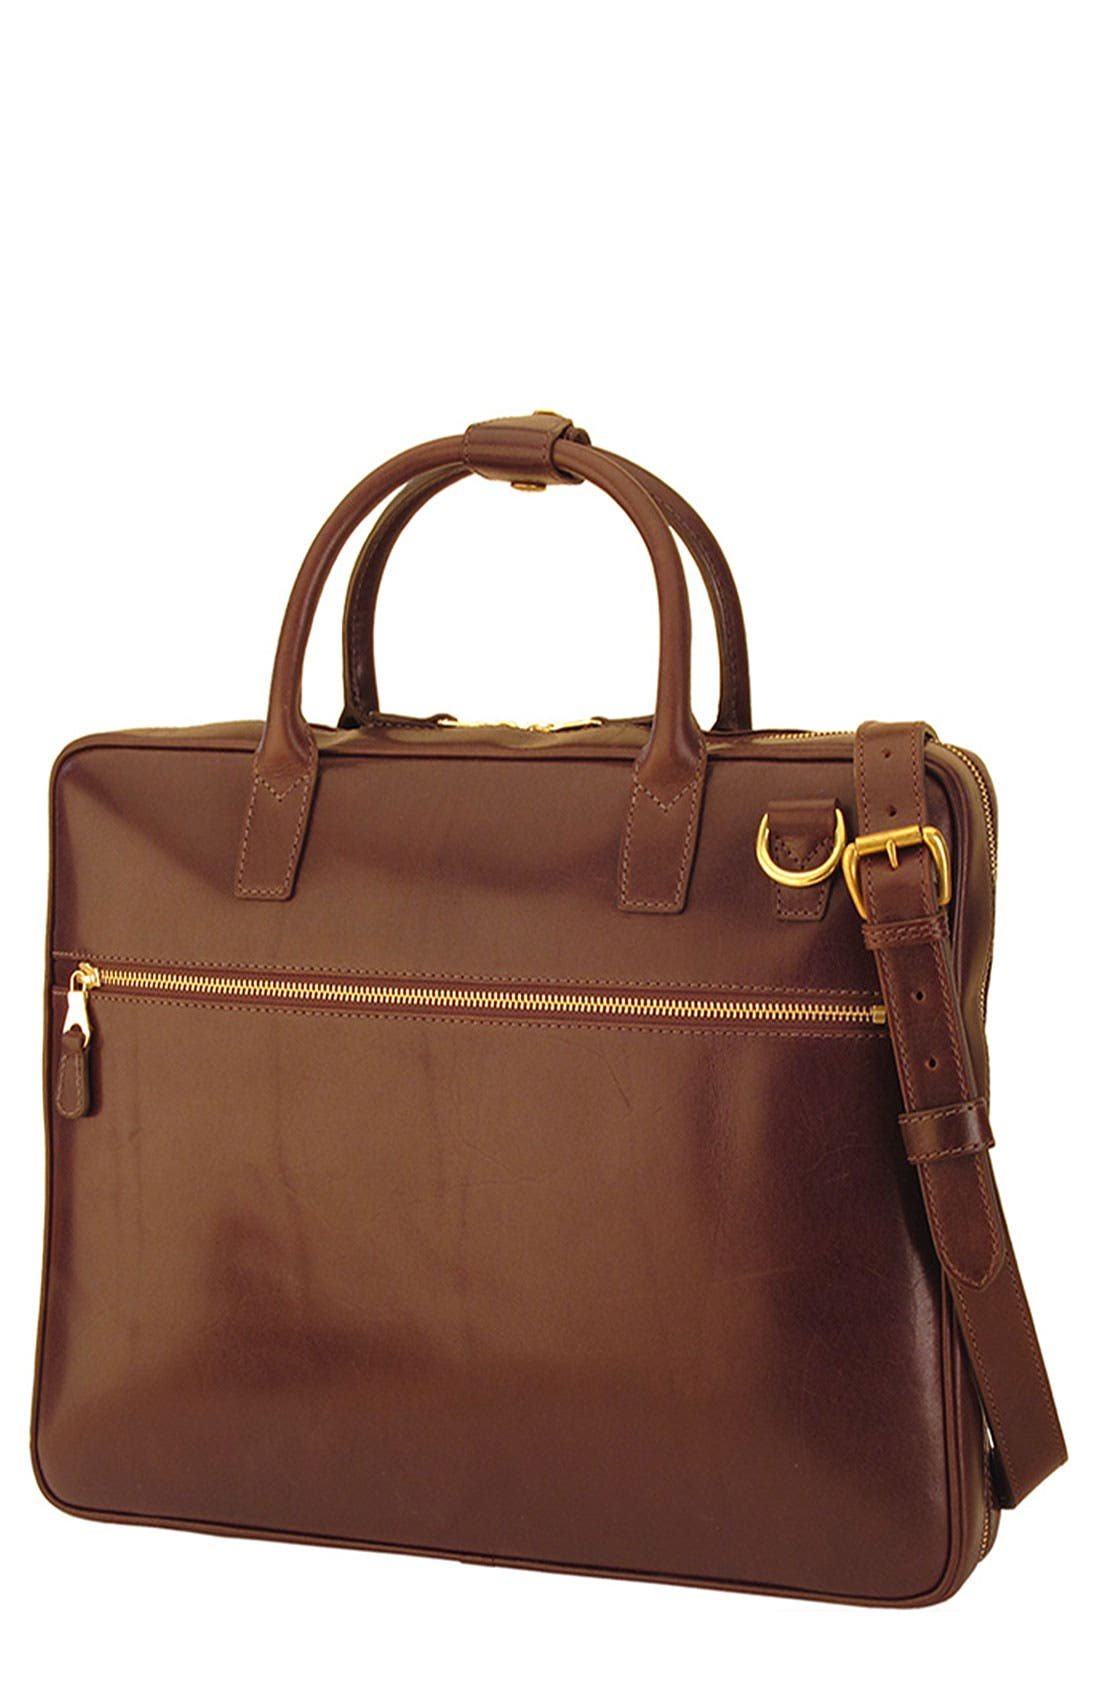 Main Image - Mulholland 'Slim' Leather Laptop Bag (17 Inch)